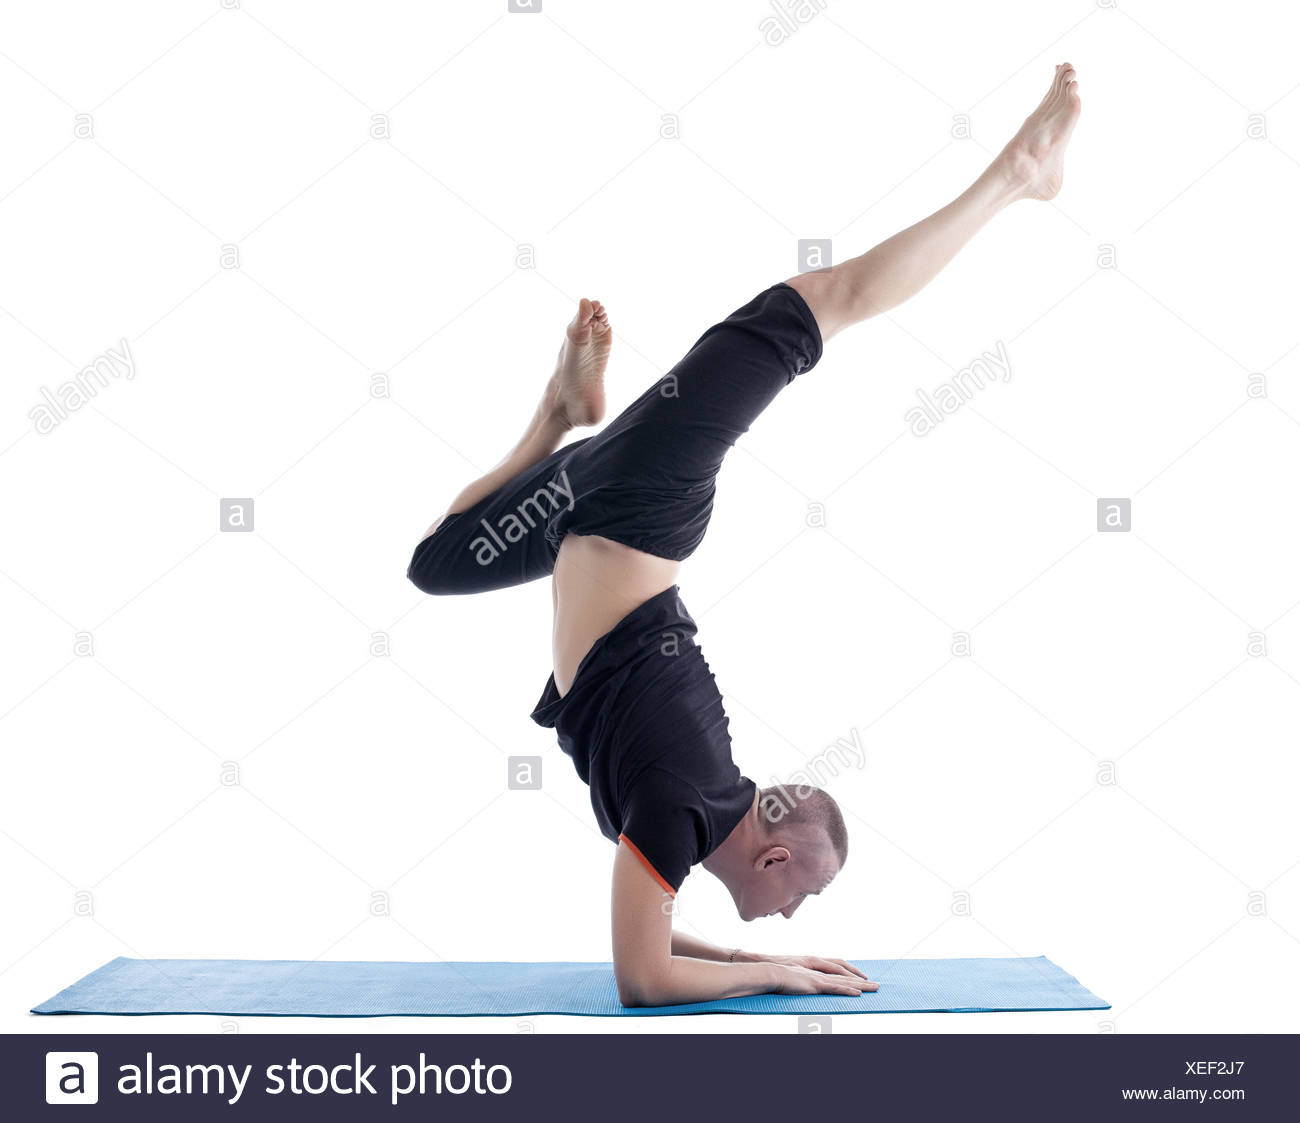 Flexible man posing in difficult yoga pose Stock Photo - Alamy